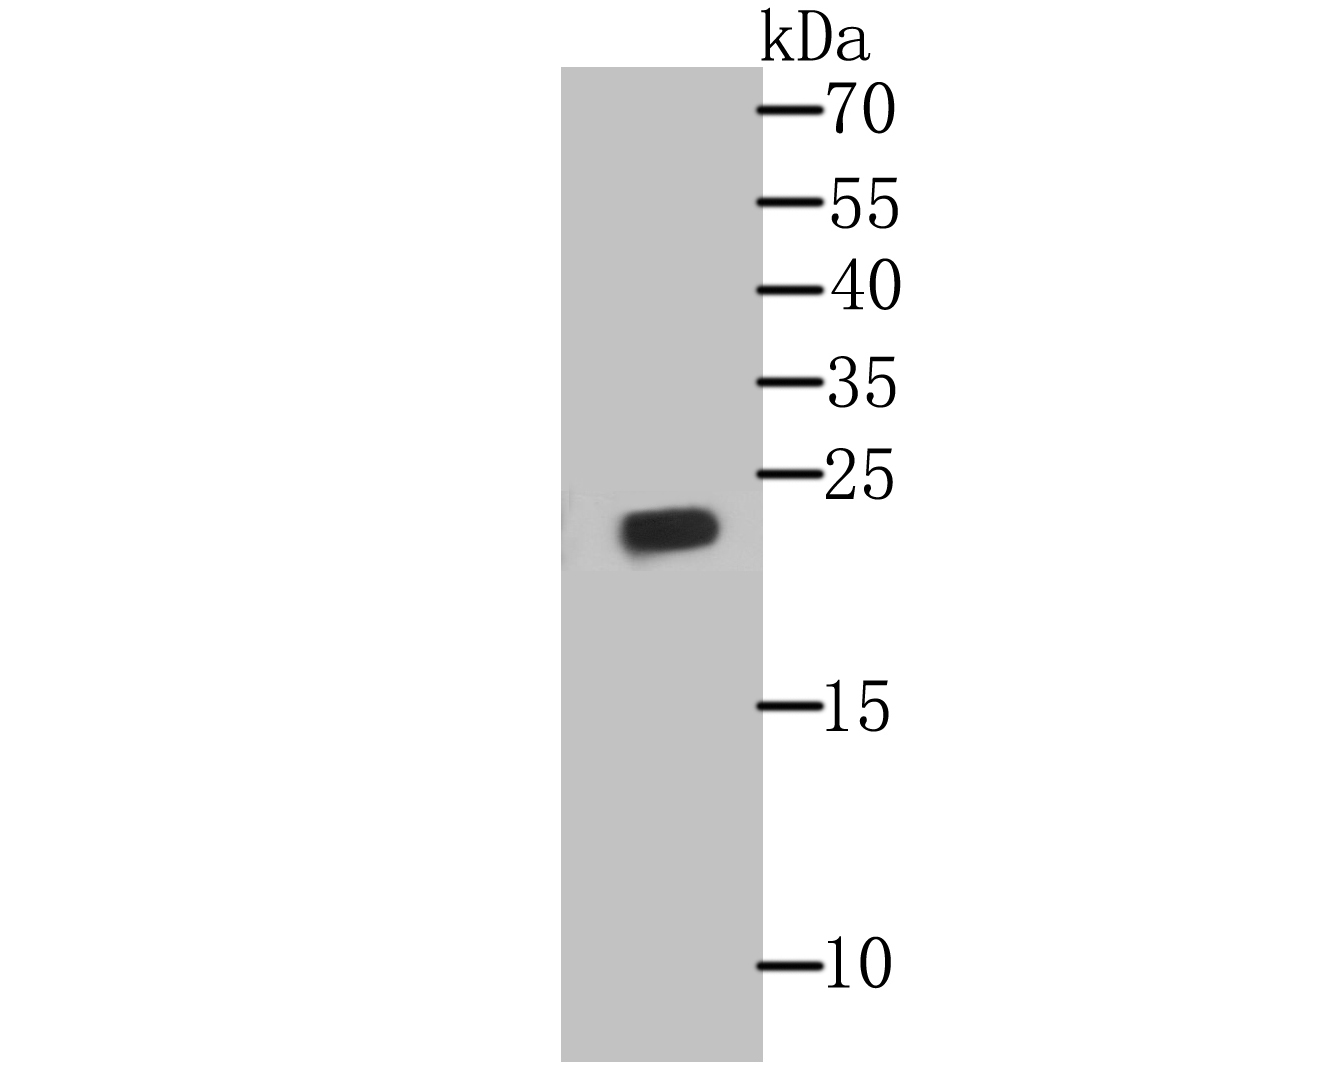 Western blot analysis of Glutathione Peroxidase 1 on THP-1 cell lysate using anti- Glutathione Peroxidase 1 antibody at 1/500 dilution.